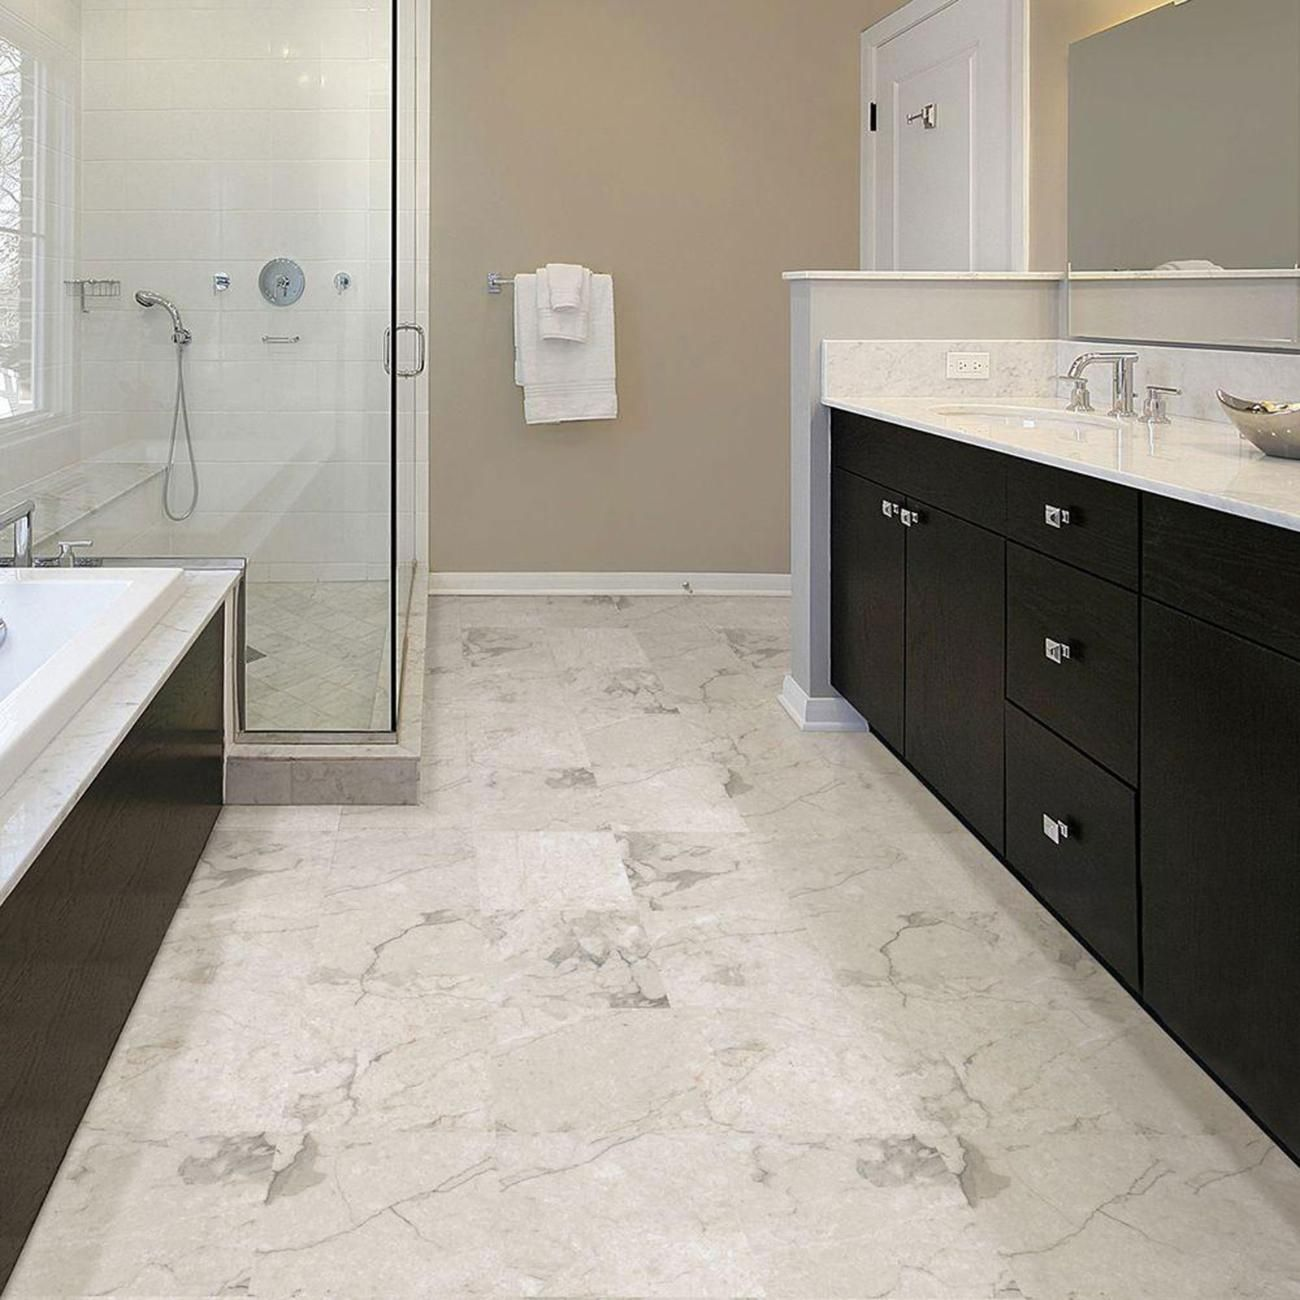 cost of tile for bathroom floor%0A   WAYS TO GET THE MARBLE LOOK WITHOUT THE MARBLE PRICE BY BRITTANY DEVENYI  http